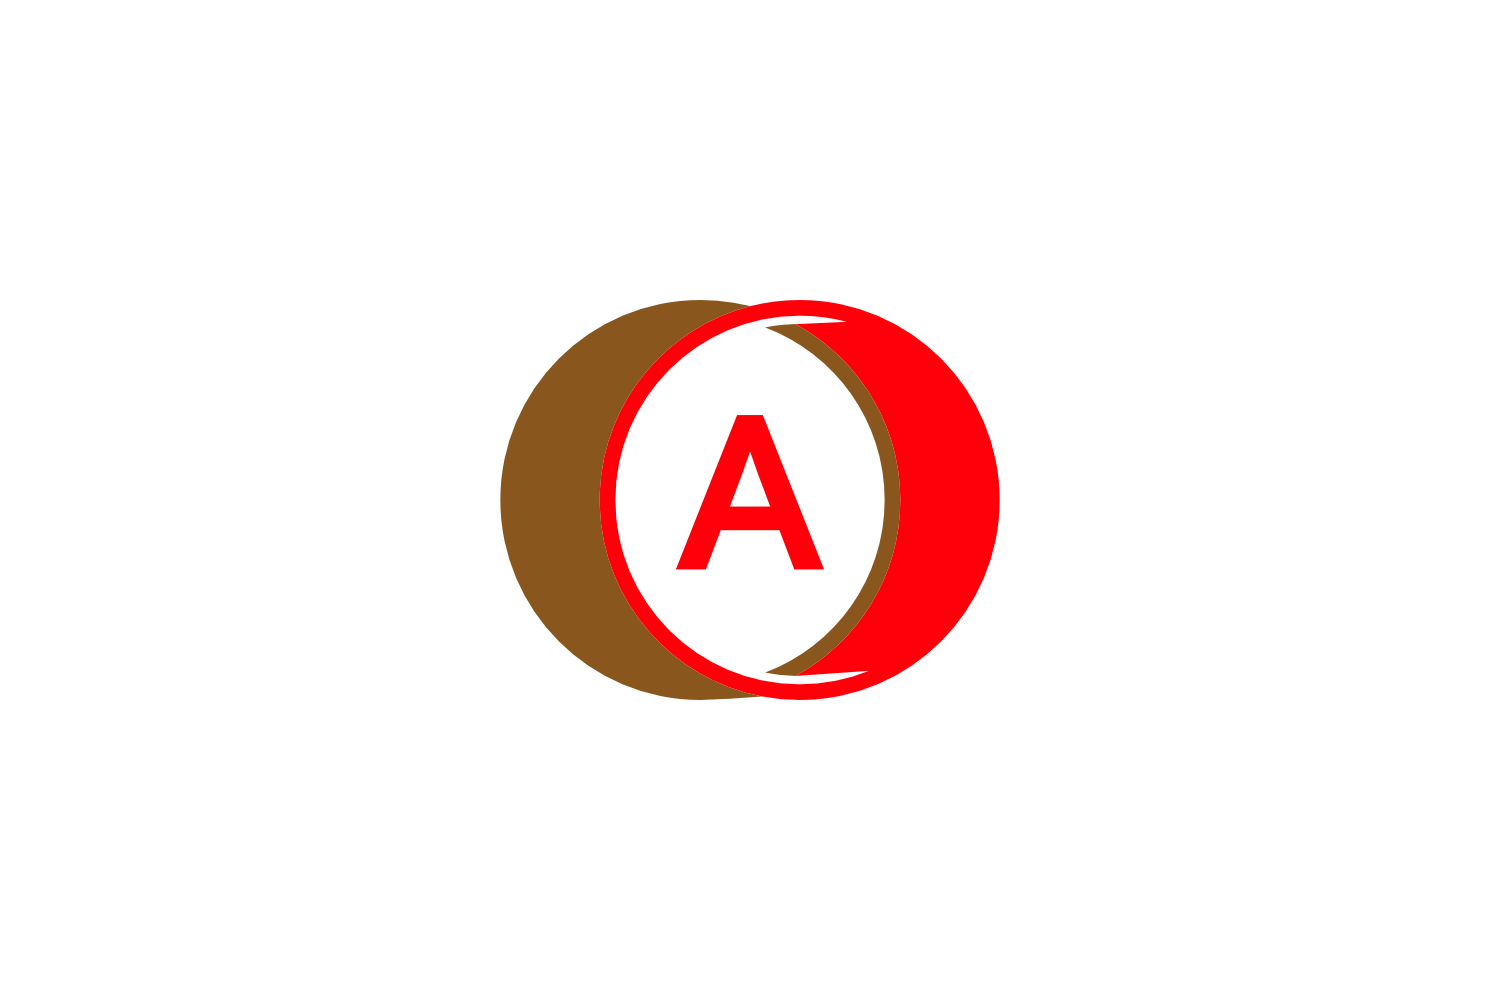 a letter circle logo example image 1